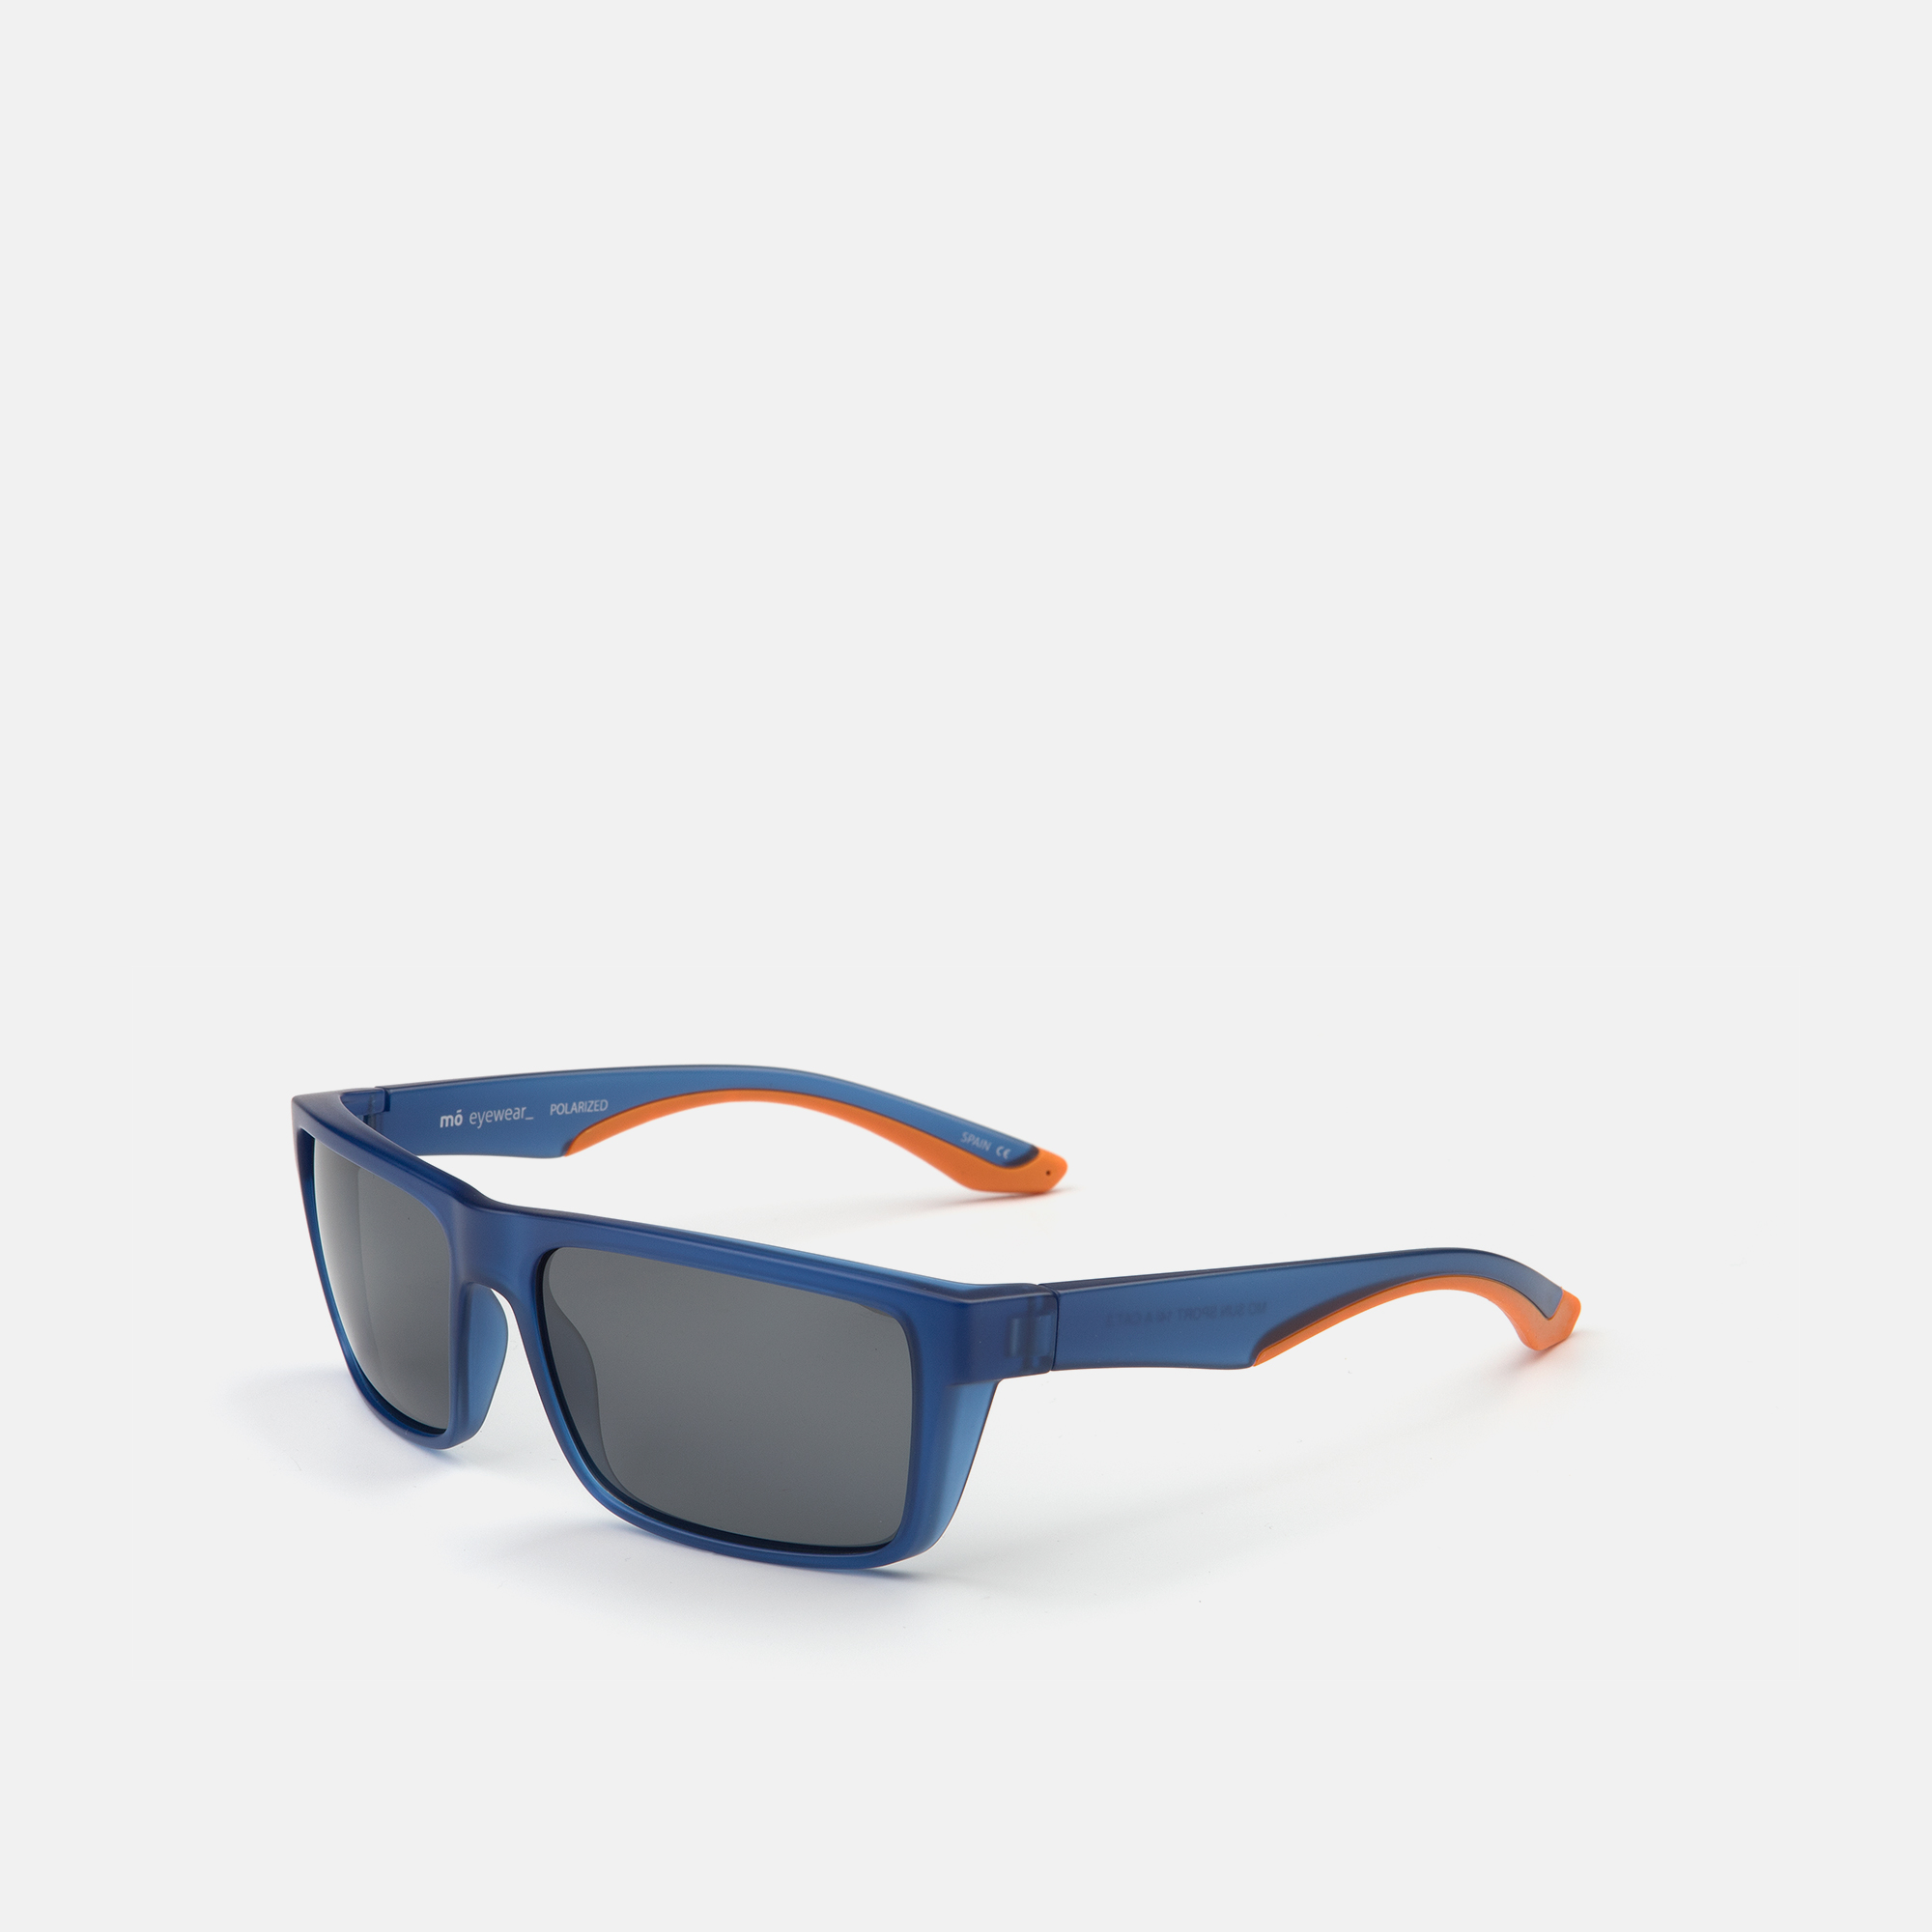 mó sun sport 14I A, blue/orange, hi-res